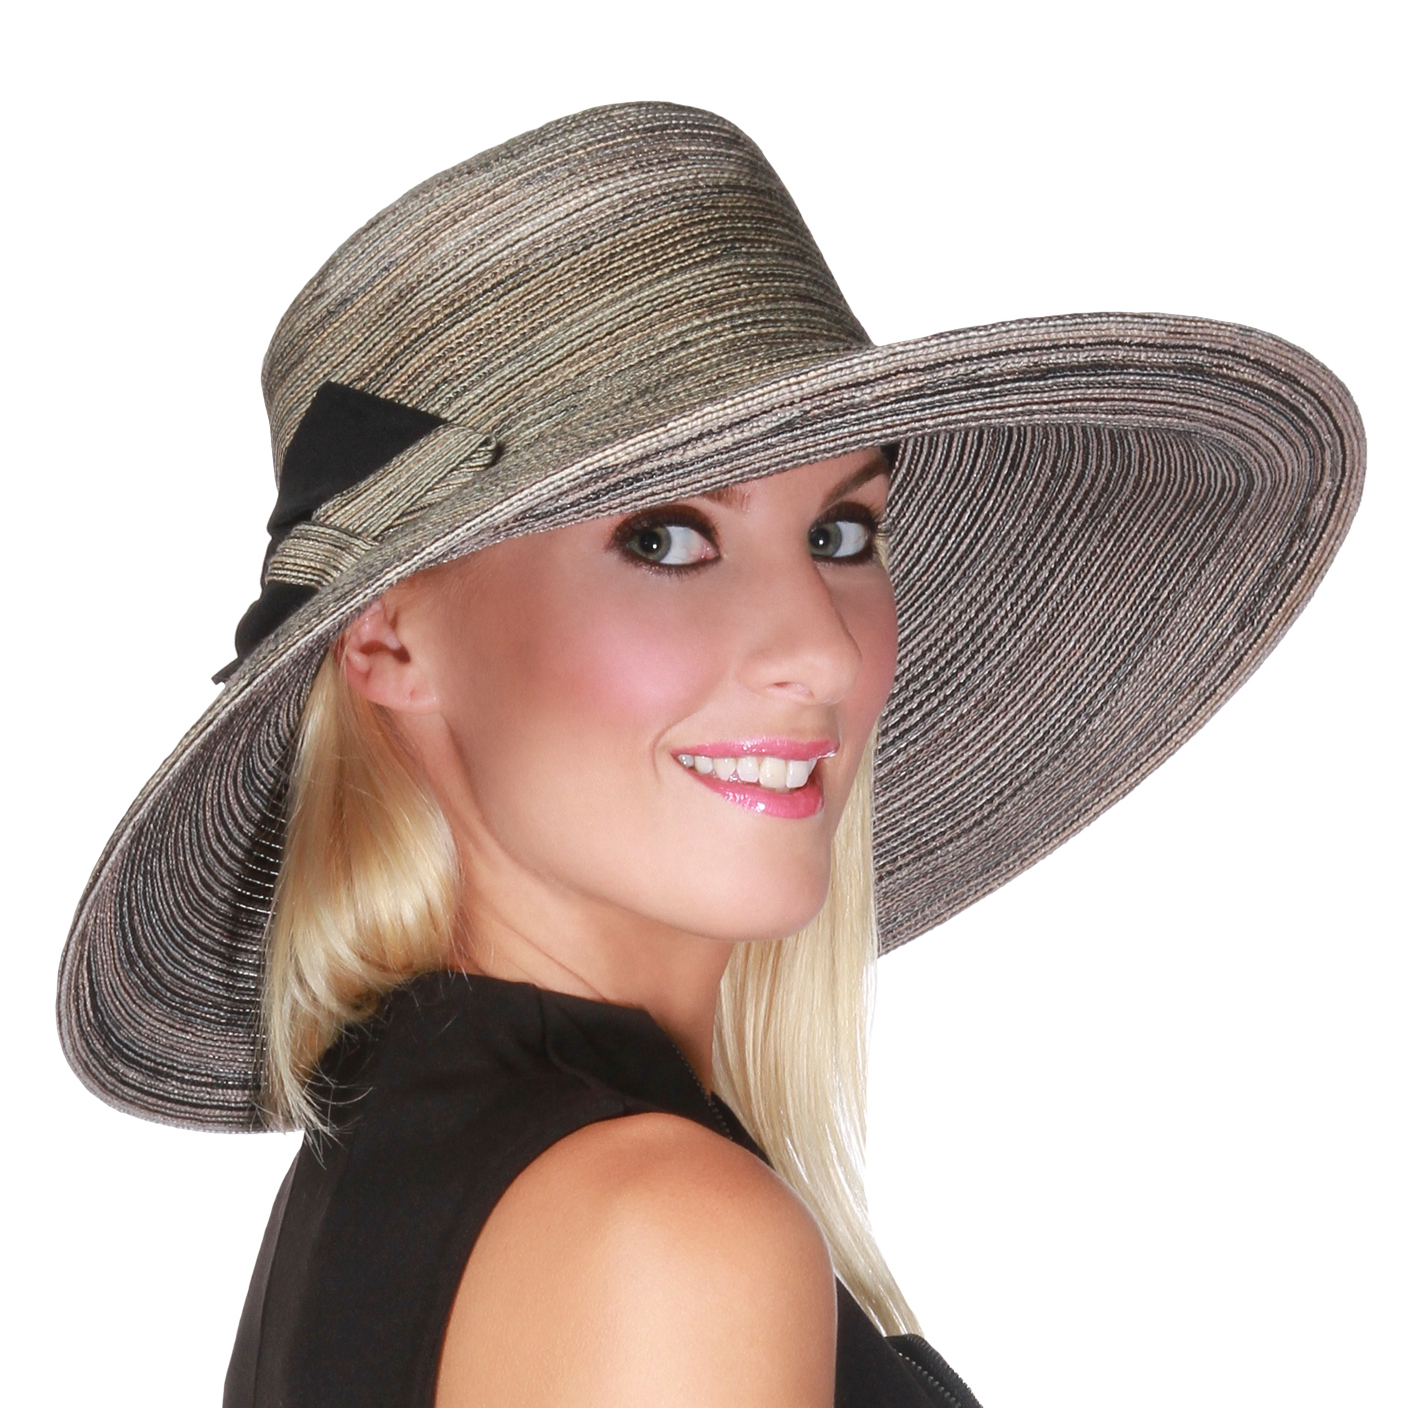 4a5391da5fec0 Southern Charm by Physician Endorsed Sun HatBeautiful Sun Hat with Bow Sun  Hat Belladonna Sun Hat in BlackWide Brimmed Kentucky Derby ...